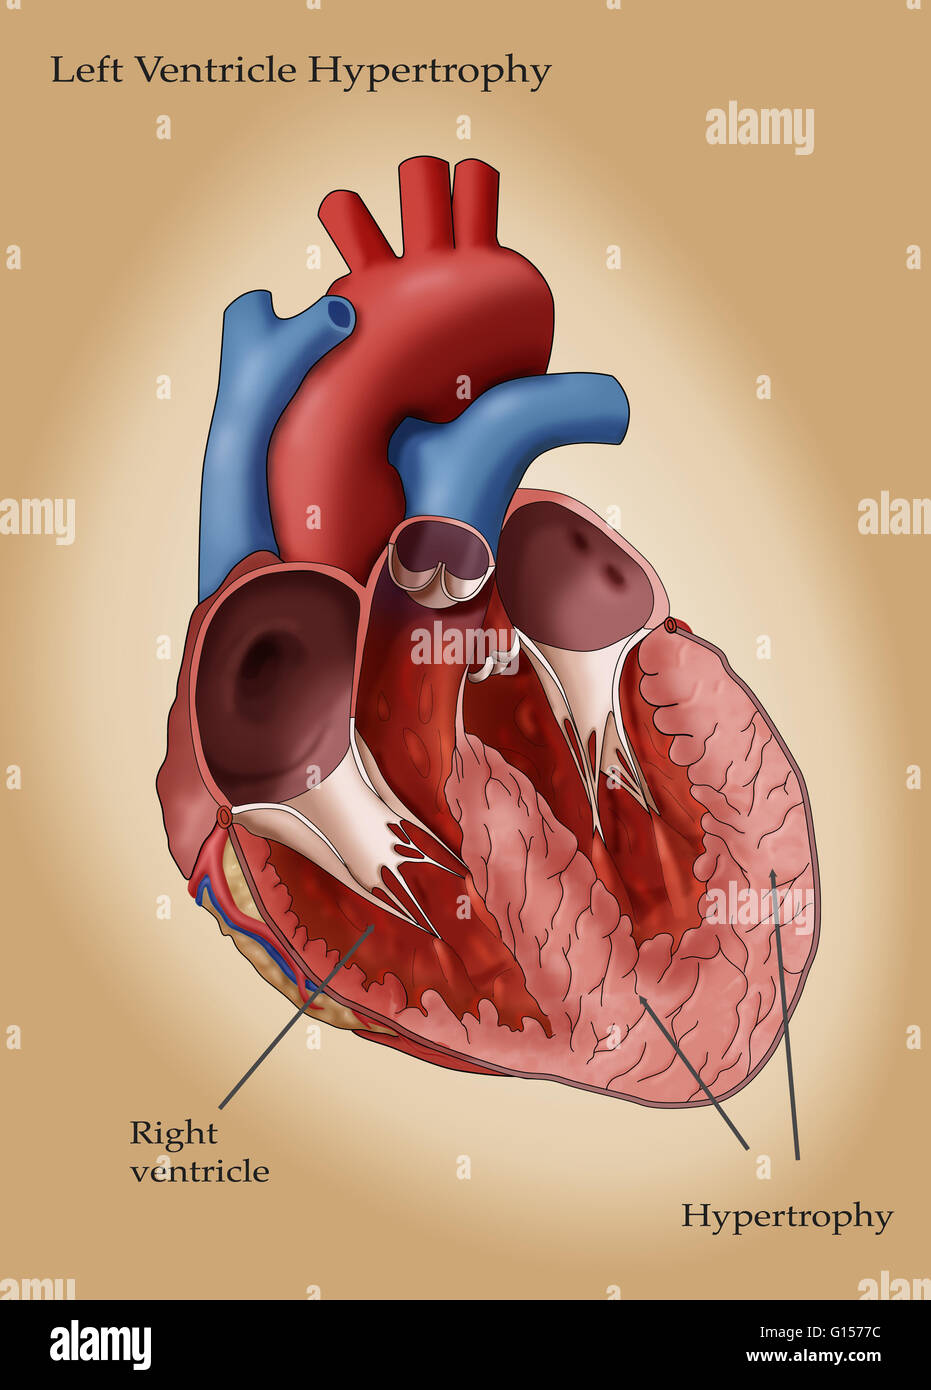 Illustration of the heart showing hypertrophy in the left ventricle ...